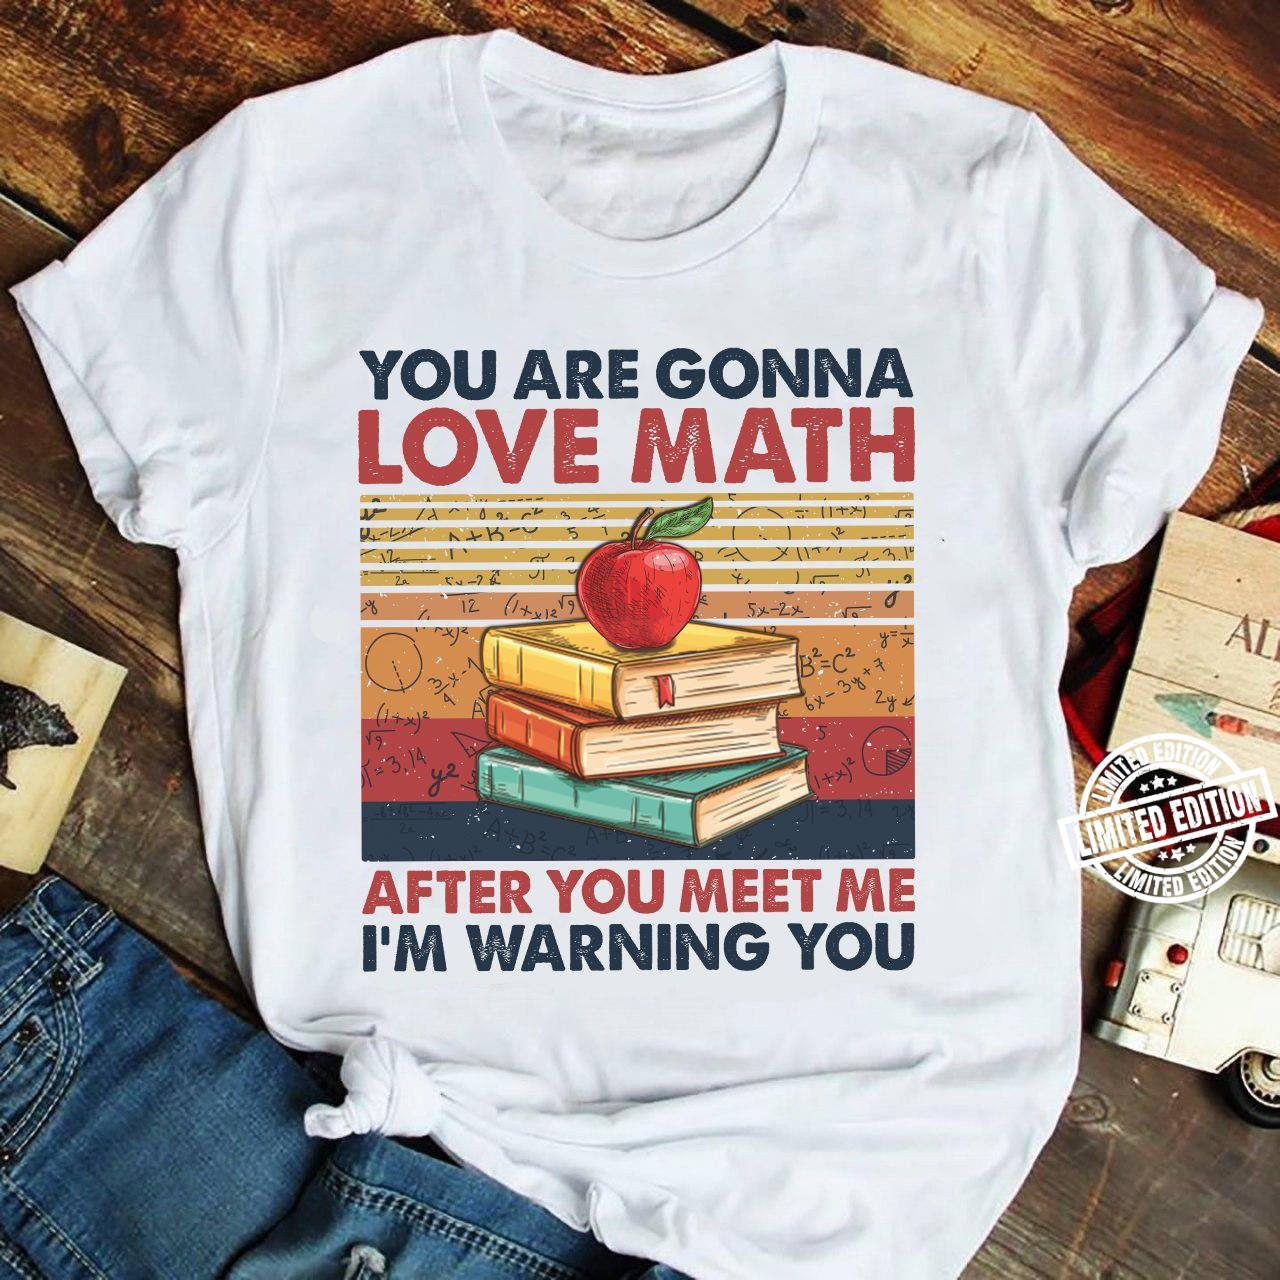 You are gonna love mart after you meet me im warning you shirt